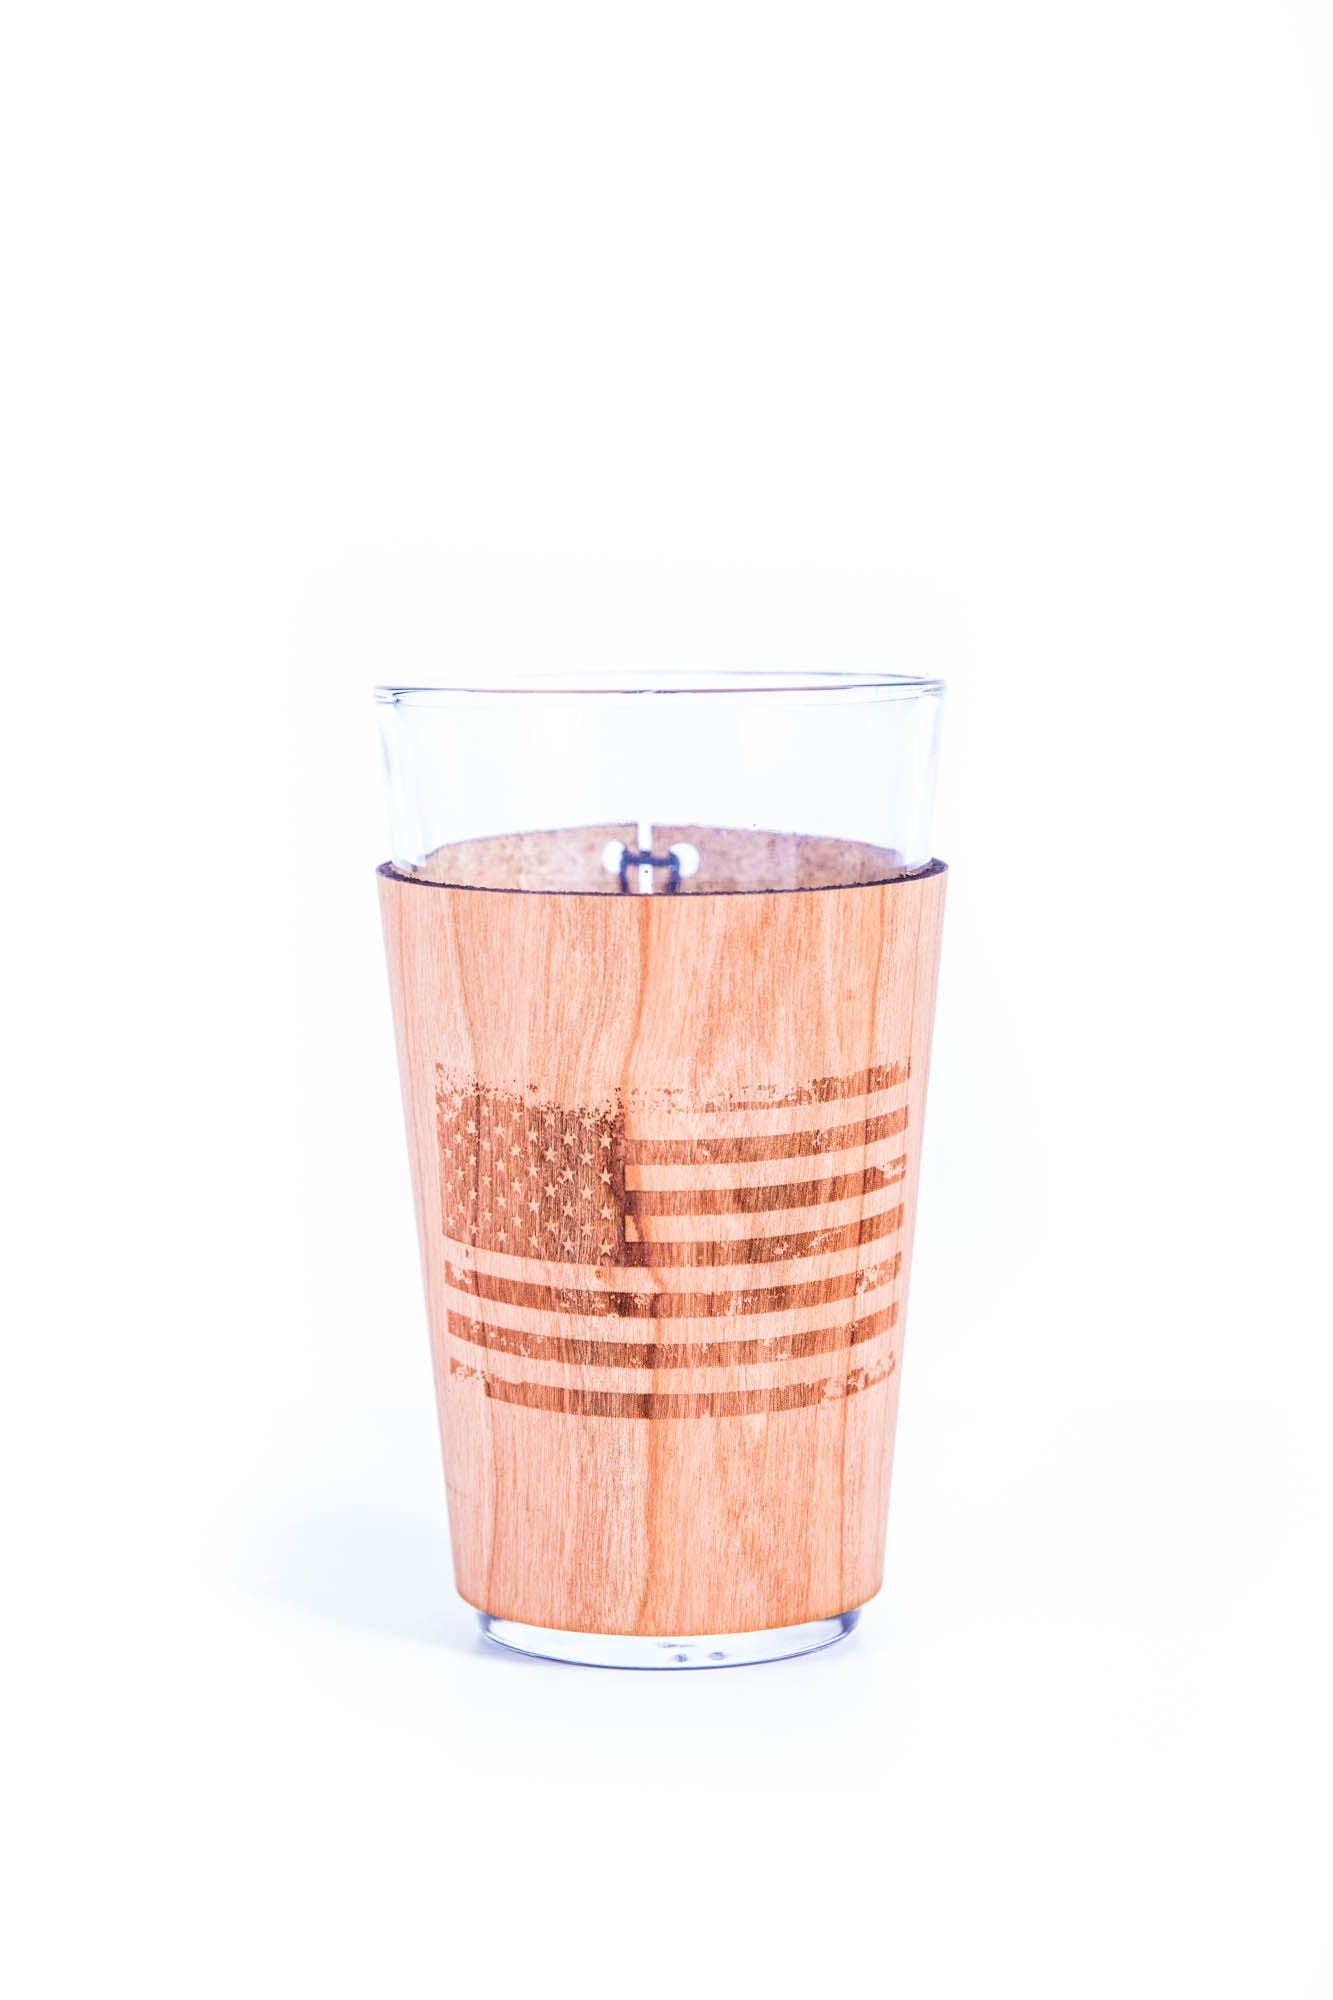 Real Wood Pint Koozie - sold by Just 1 Tree